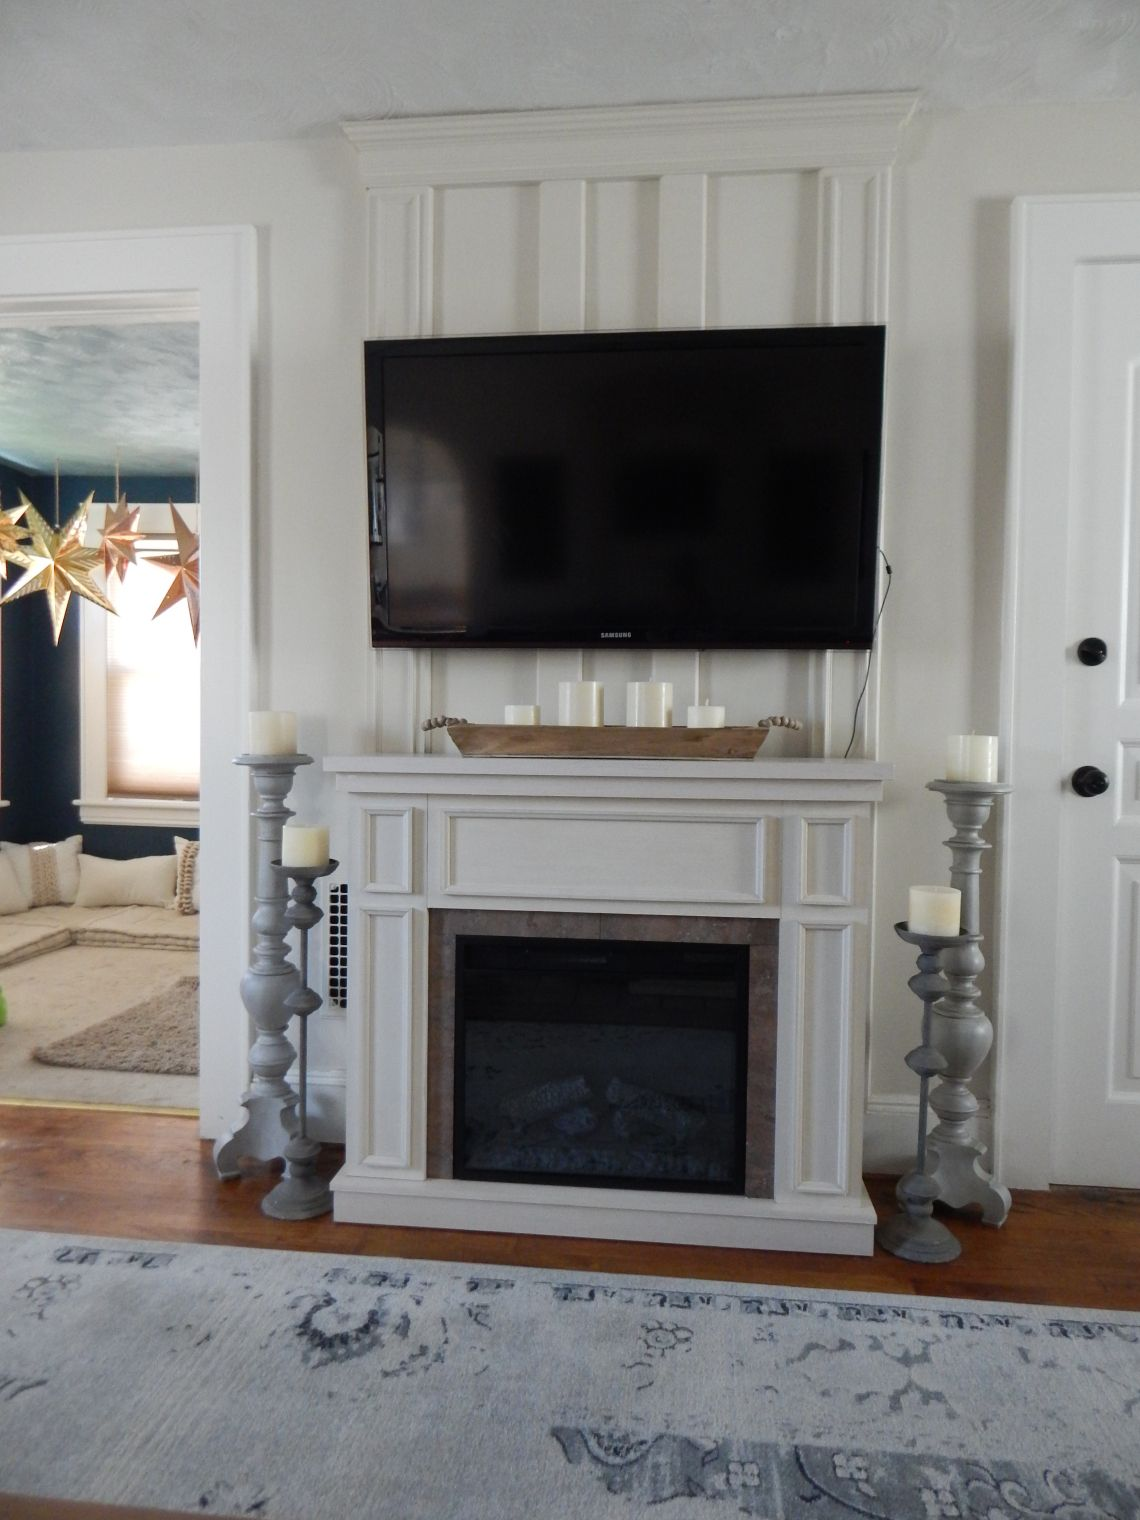 Framing the Fireplace | Pinterest | Electric fireplaces, Fireplace ...